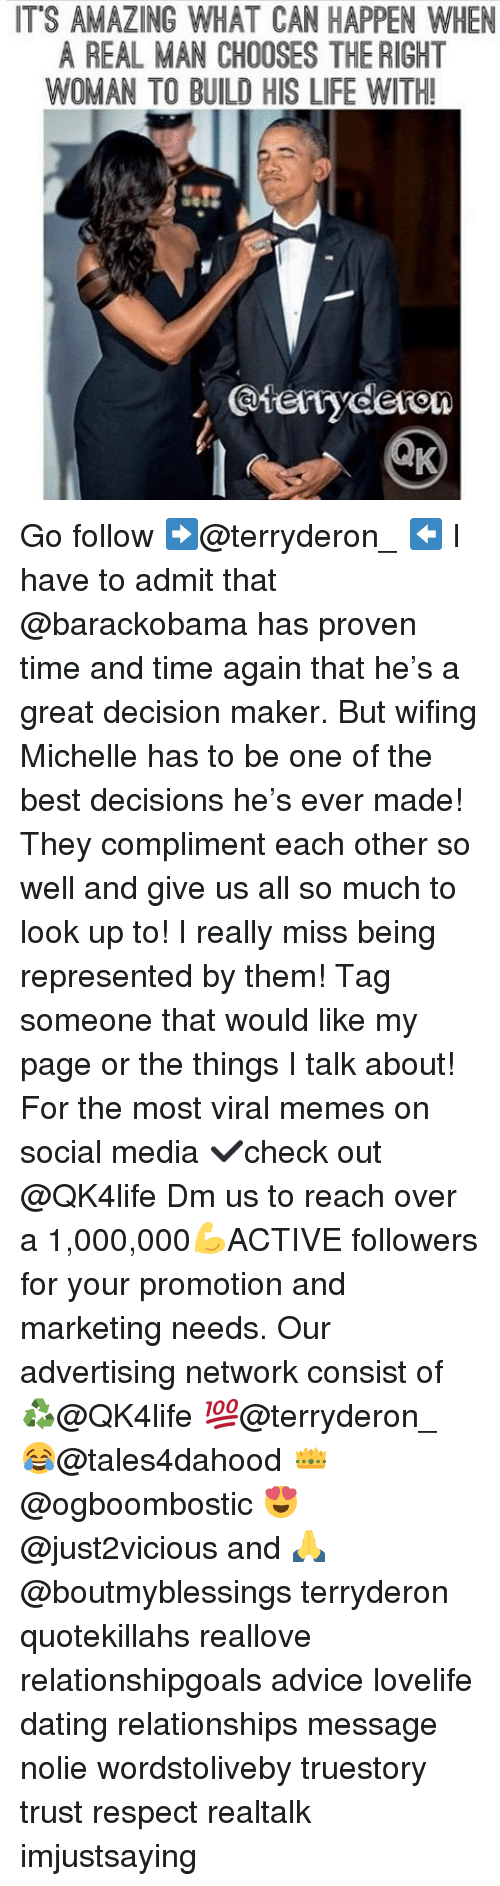 Advice, Dating, and Life: IT'S AMAZING WHAT CAN HAPPEN WHEN  A REAL MAN CHOOSES THE RIGHT  WOMAN TO BUILD HIS LIFE WITH! Go follow ➡@terryderon_ ⬅️ I have to admit that @barackobama has proven time and time again that he's a great decision maker. But wifing Michelle has to be one of the best decisions he's ever made! They compliment each other so well and give us all so much to look up to! I really miss being represented by them! Tag someone that would like my page or the things I talk about! For the most viral memes on social media ✔check out @QK4life Dm us to reach over a 1,000,000💪ACTIVE followers for your promotion and marketing needs. Our advertising network consist of ♻@QK4life 💯@terryderon_ 😂@tales4dahood 👑@ogboombostic 😍@just2vicious and 🙏@boutmyblessings terryderon quotekillahs reallove relationshipgoals advice lovelife dating relationships message nolie wordstoliveby truestory trust respect realtalk imjustsaying